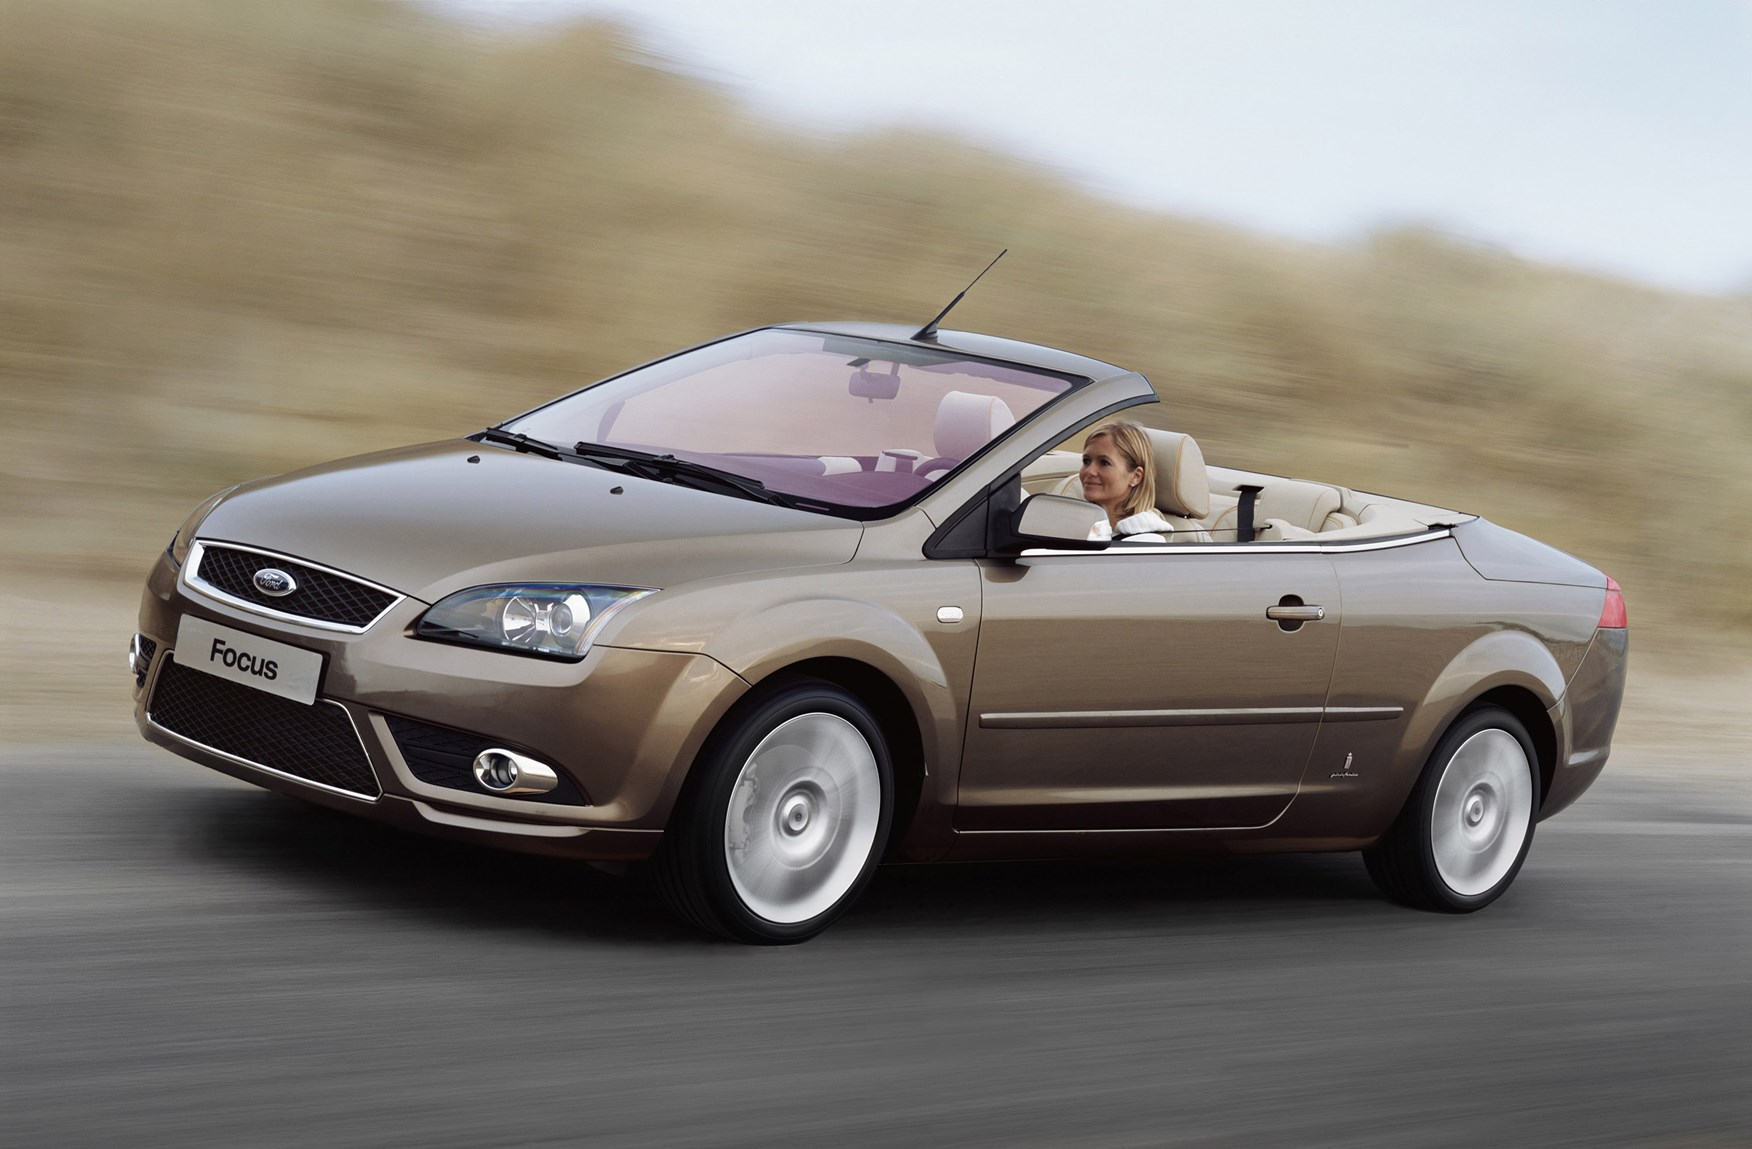 Ford Mondeo St 2018 >> Ford Focus Coupé Cabriolet Review (2006 - 2010) | Parkers